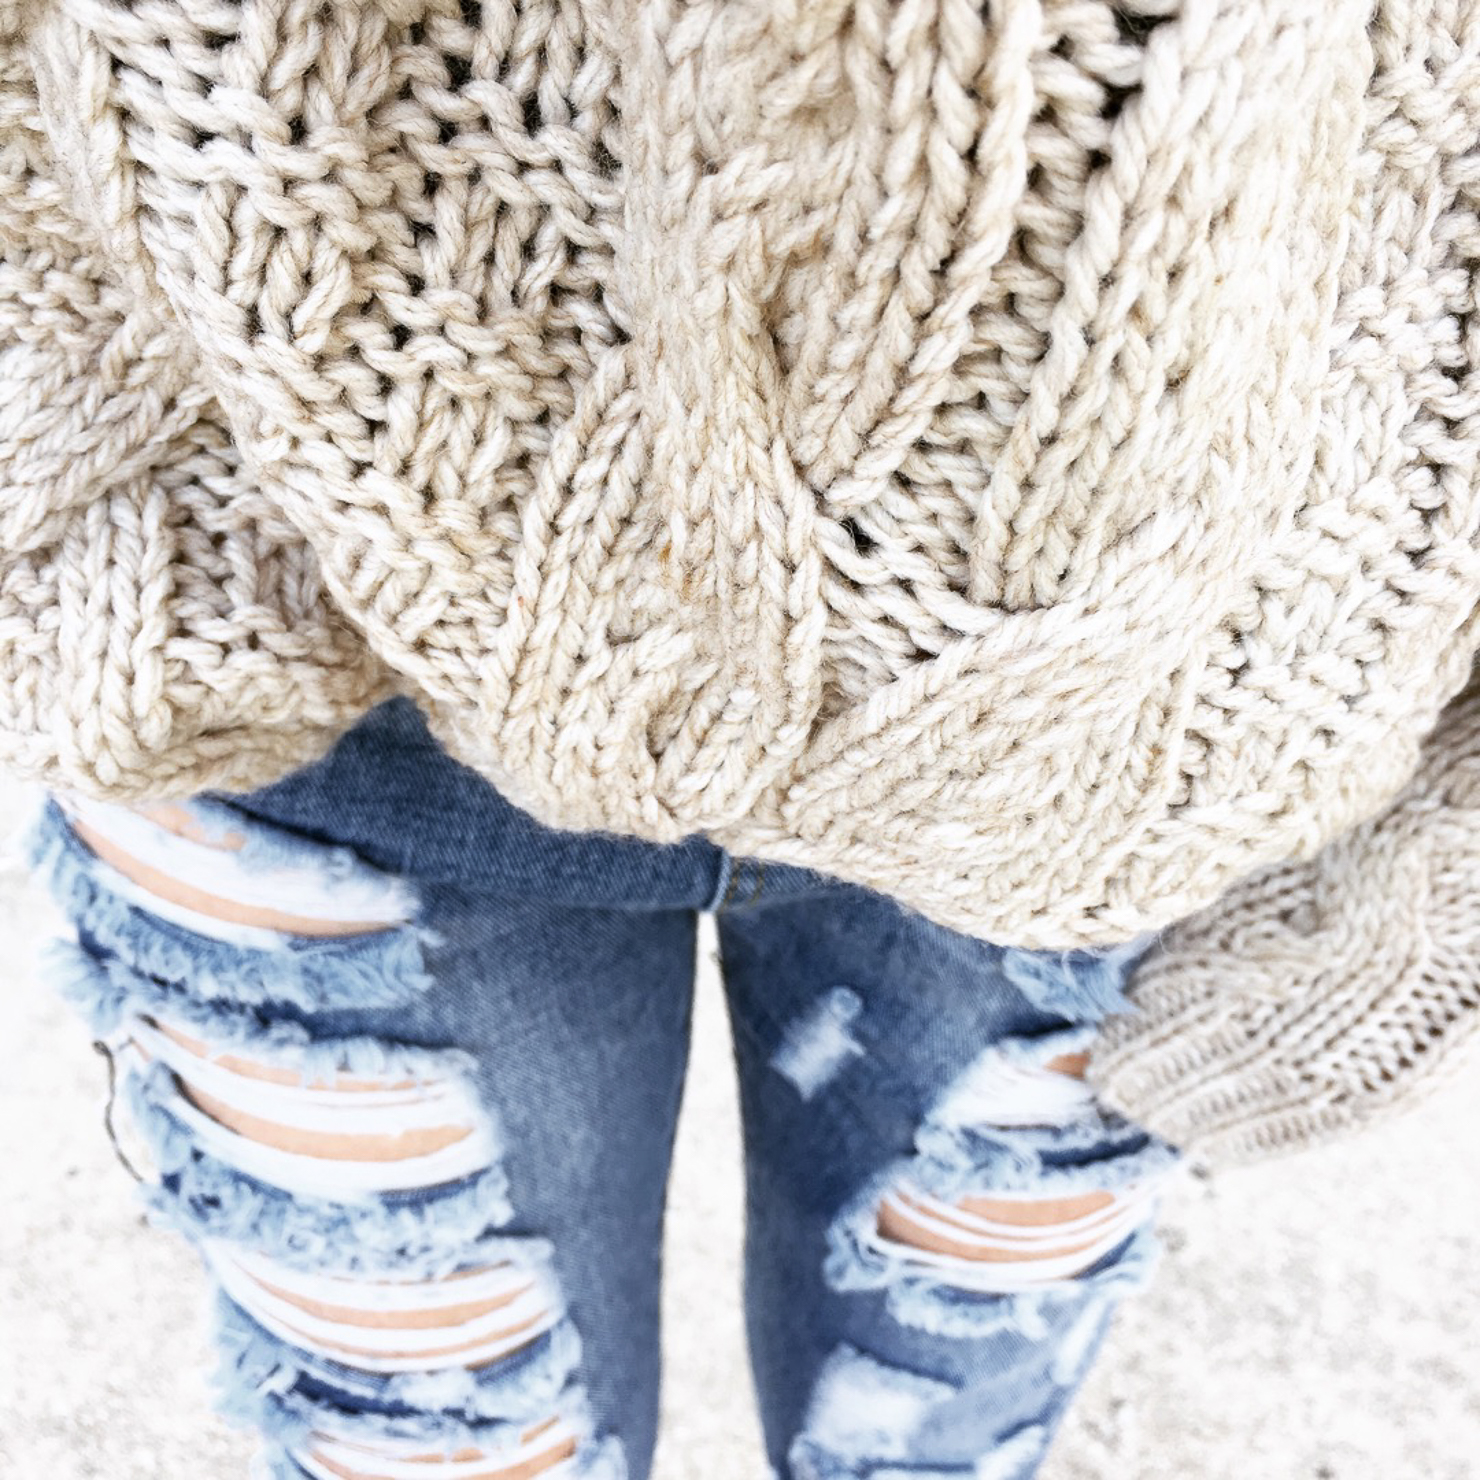 cozy-fall-outfit-hm-oversized-cable-knit-sweater-distressed-jeans